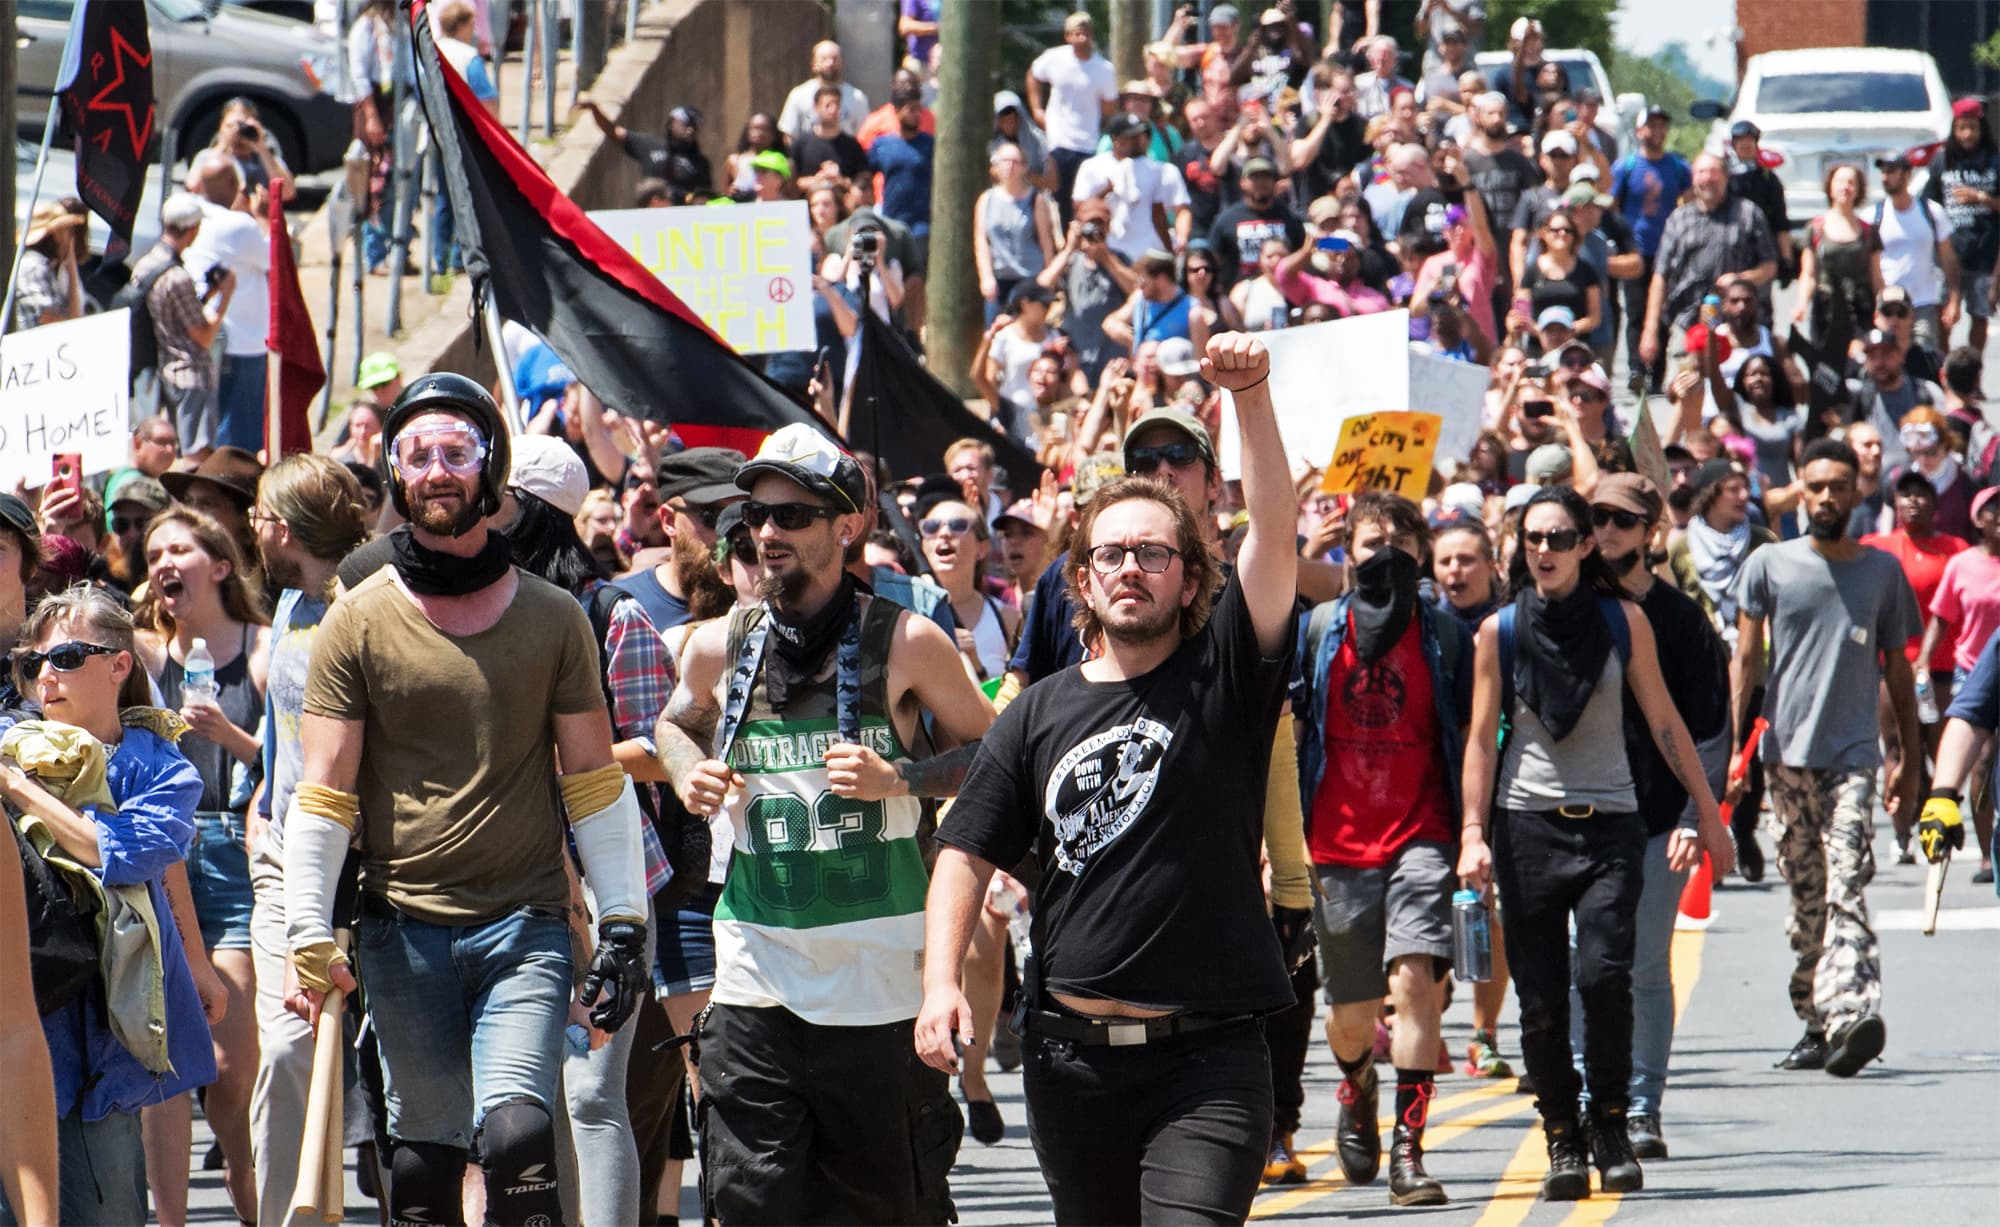 Protesters march in Charlottesville. ─ AFP